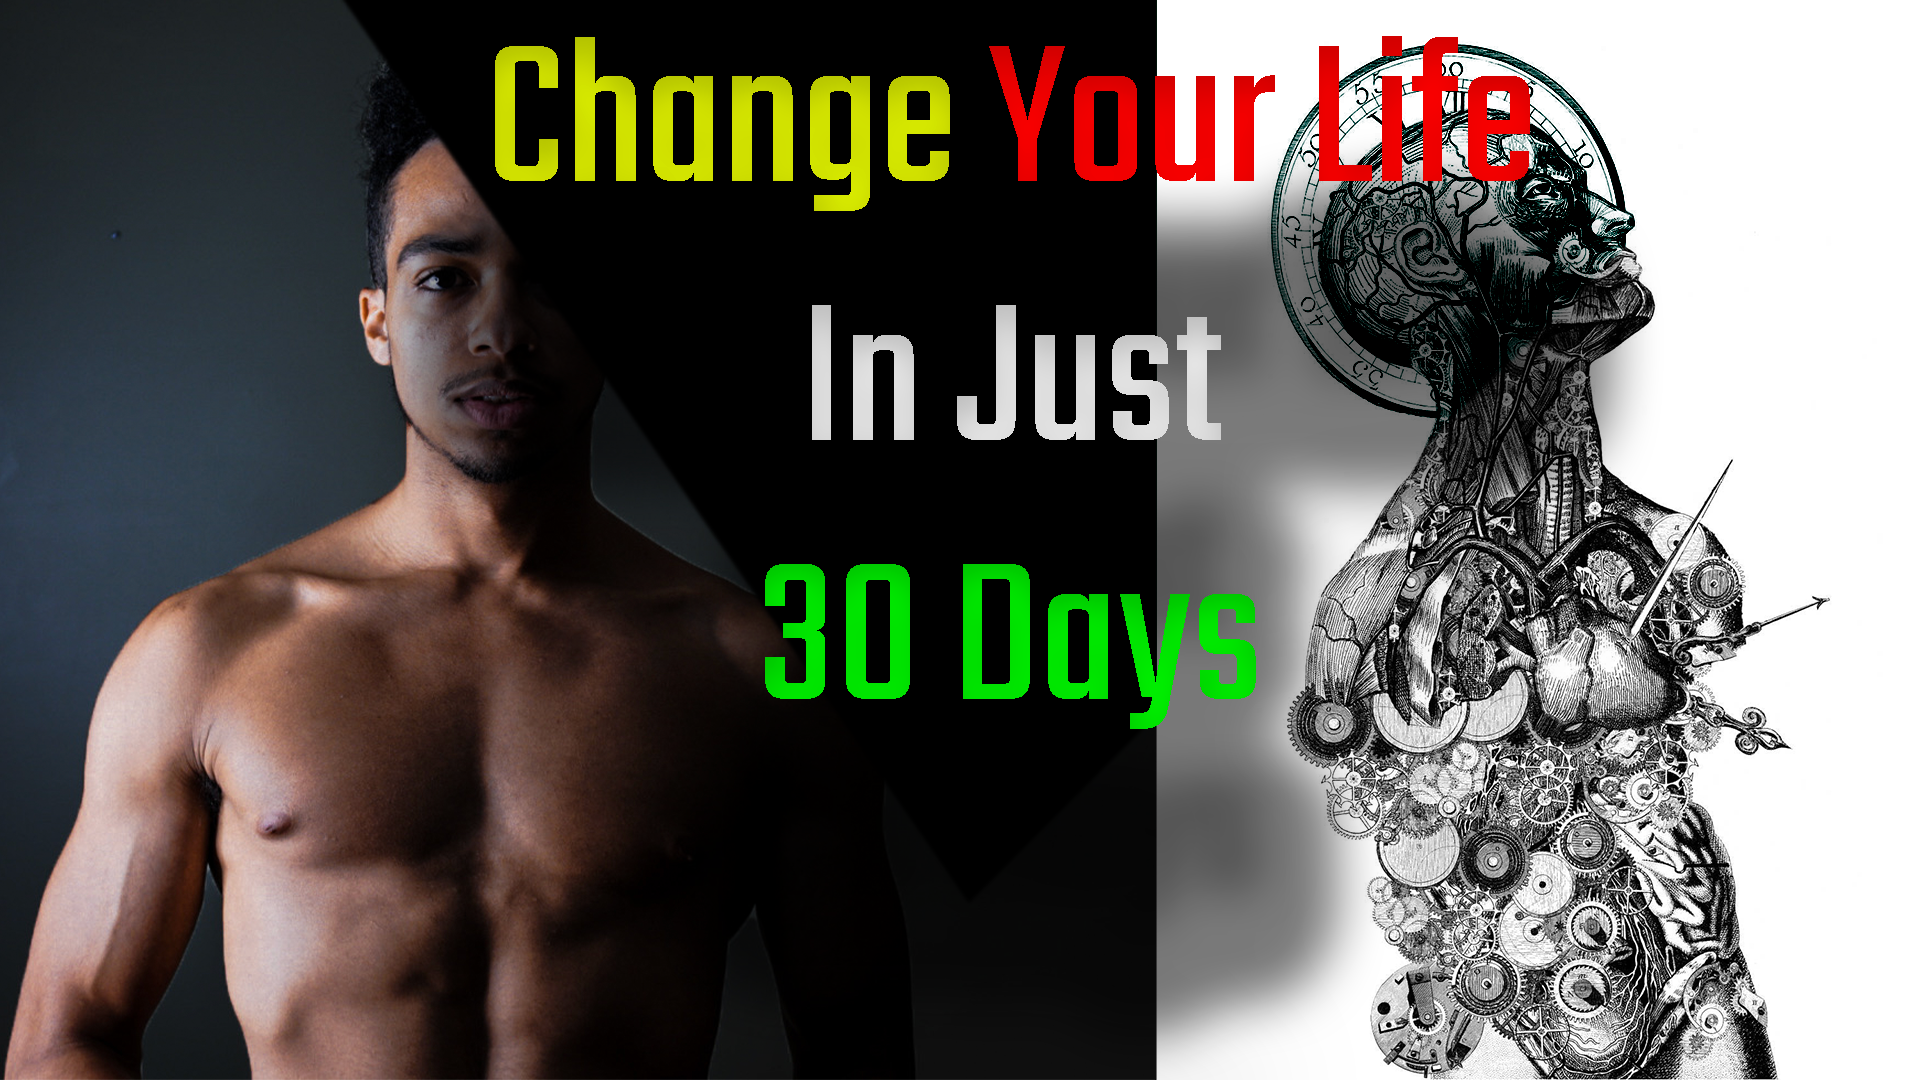 Tyler's Wellness Change Your Life in 30 days Challenge - Blogpost